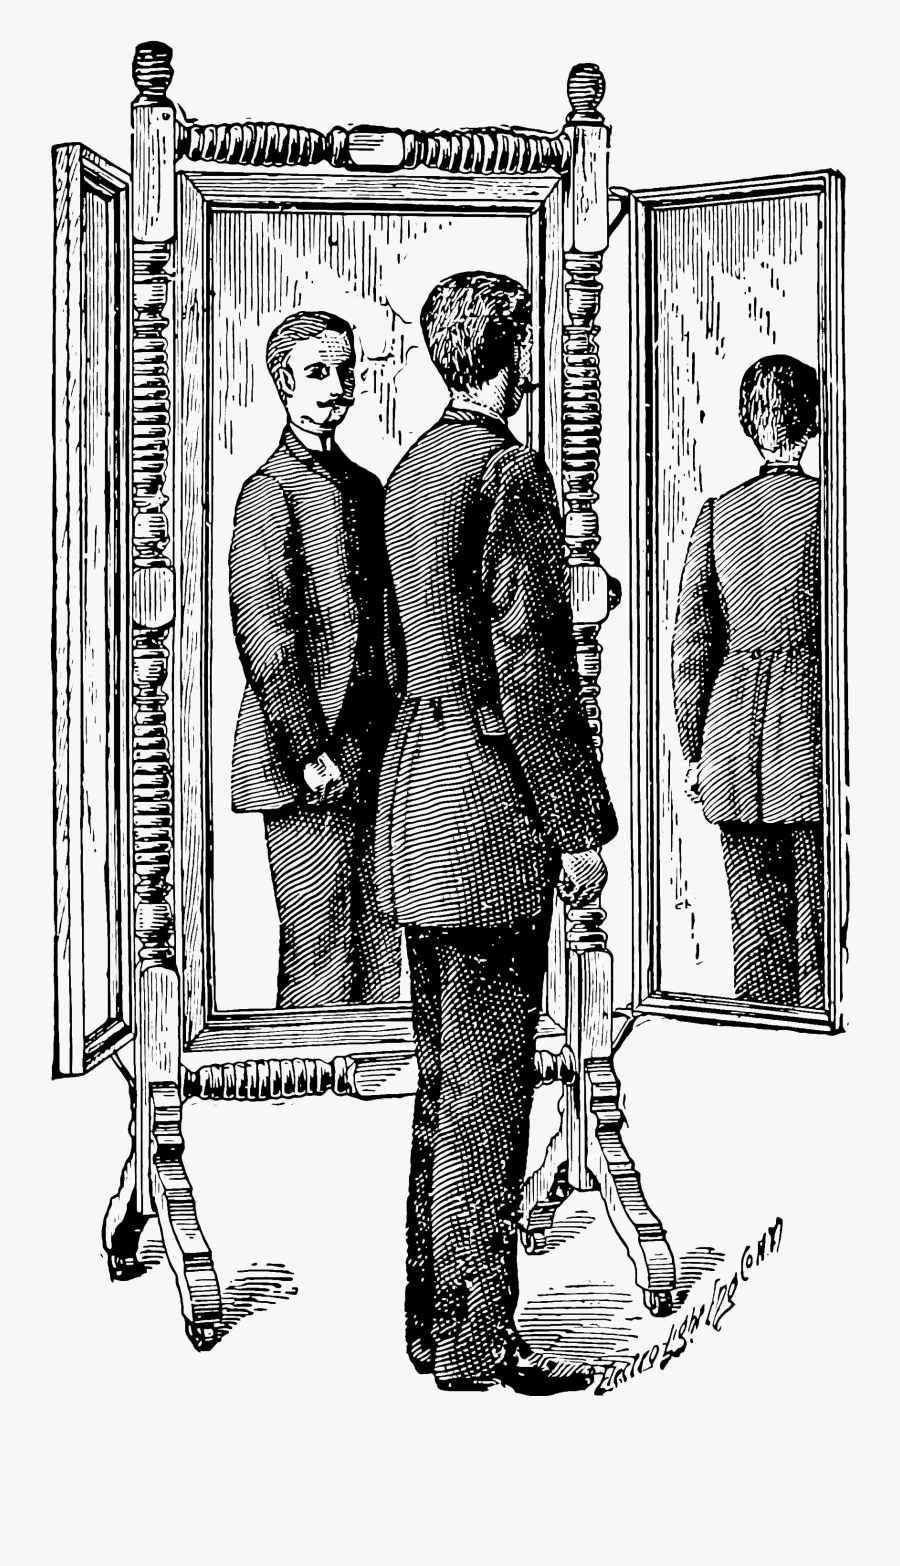 Mirror Clipart Person - Person In Mirror Drawing, Transparent Clipart